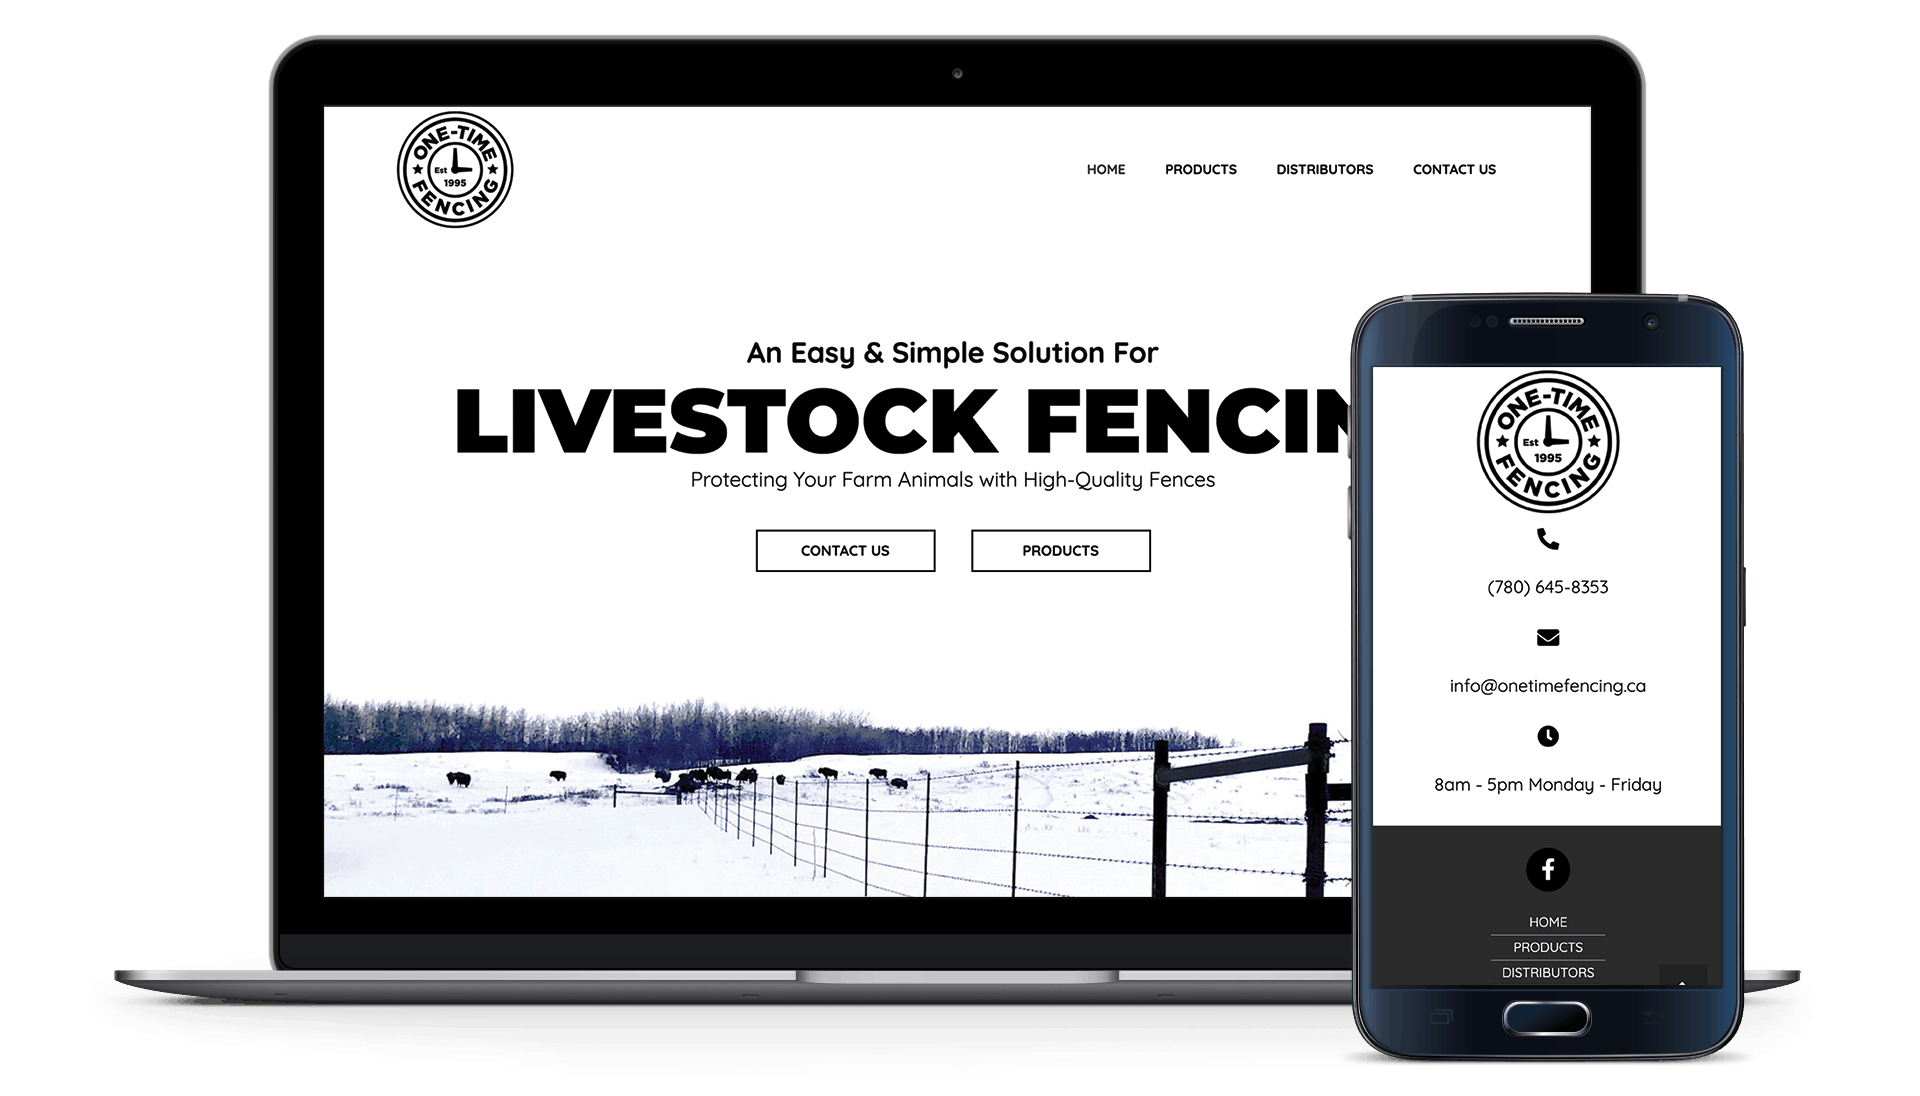 7-One-Time-Fencing---Website-2